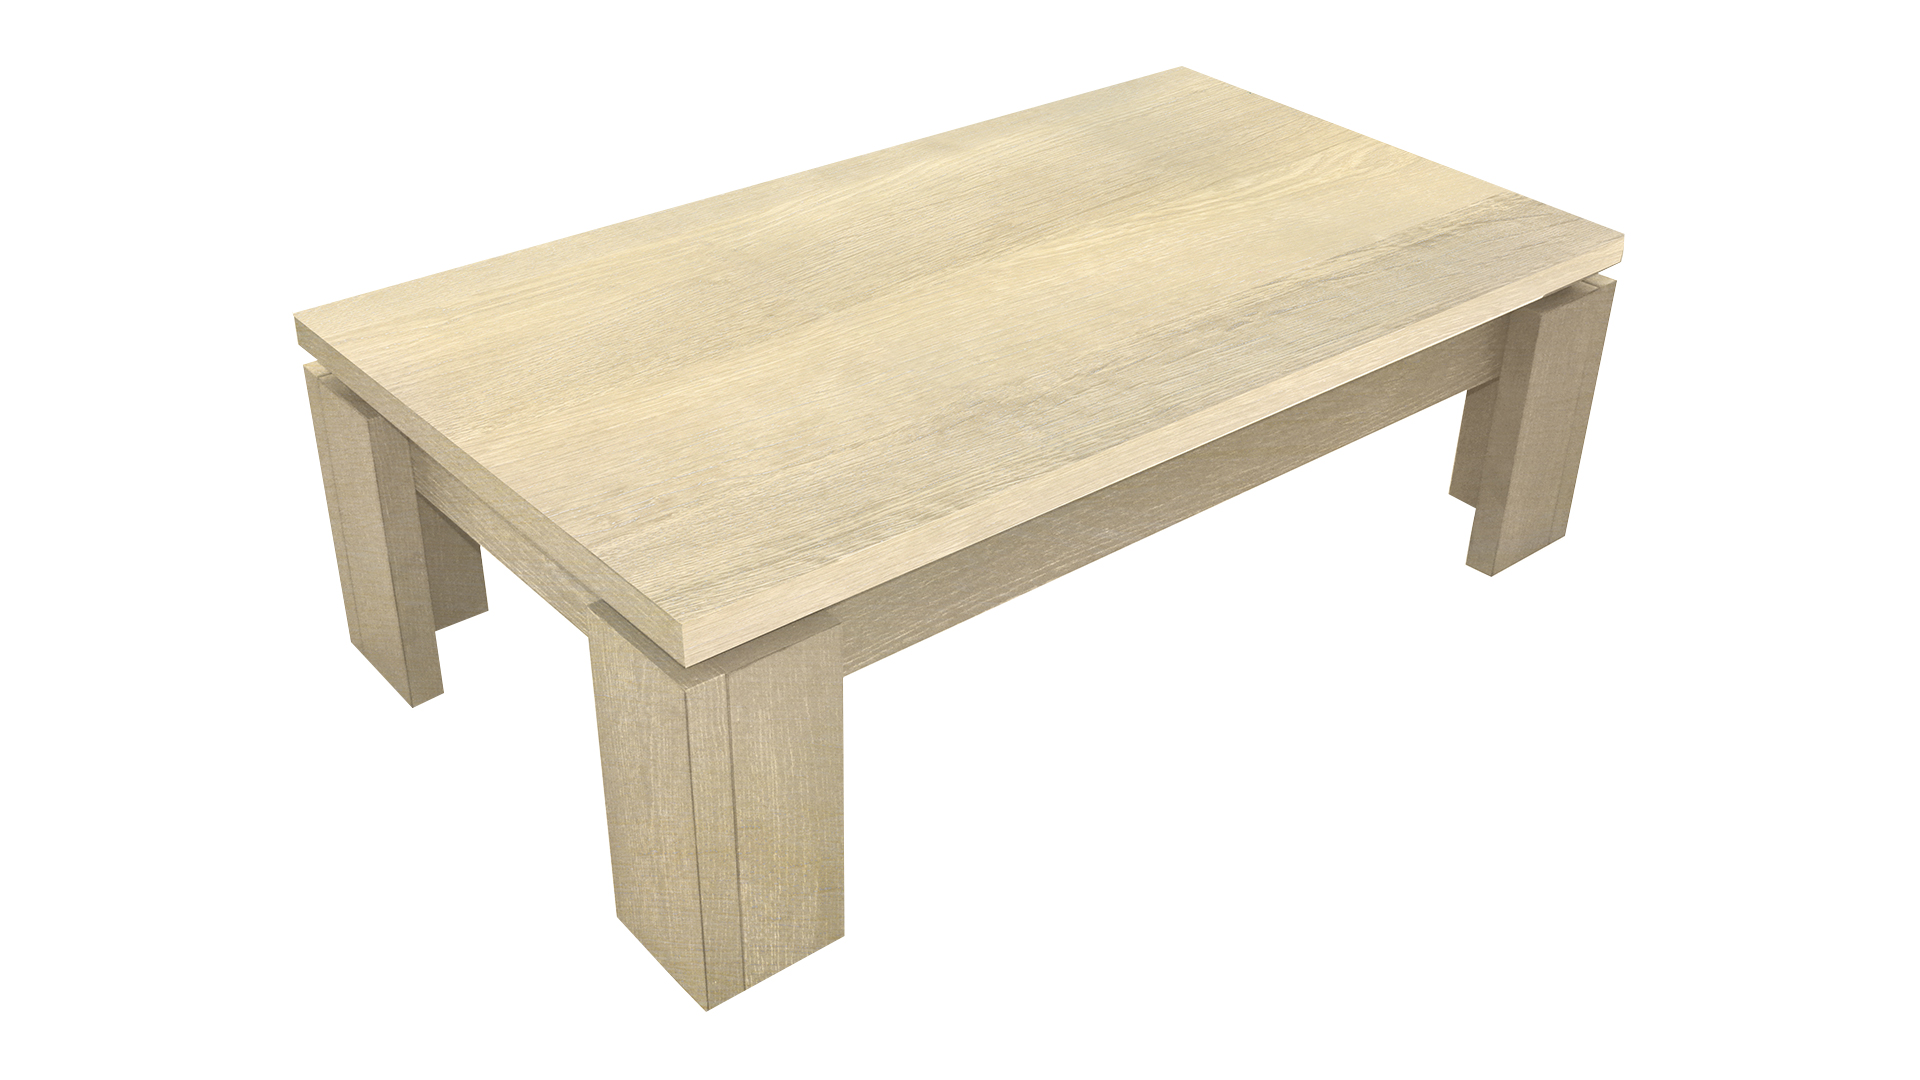 Vente table basse como tritoo maison et jardin for Table bois clair scandinave